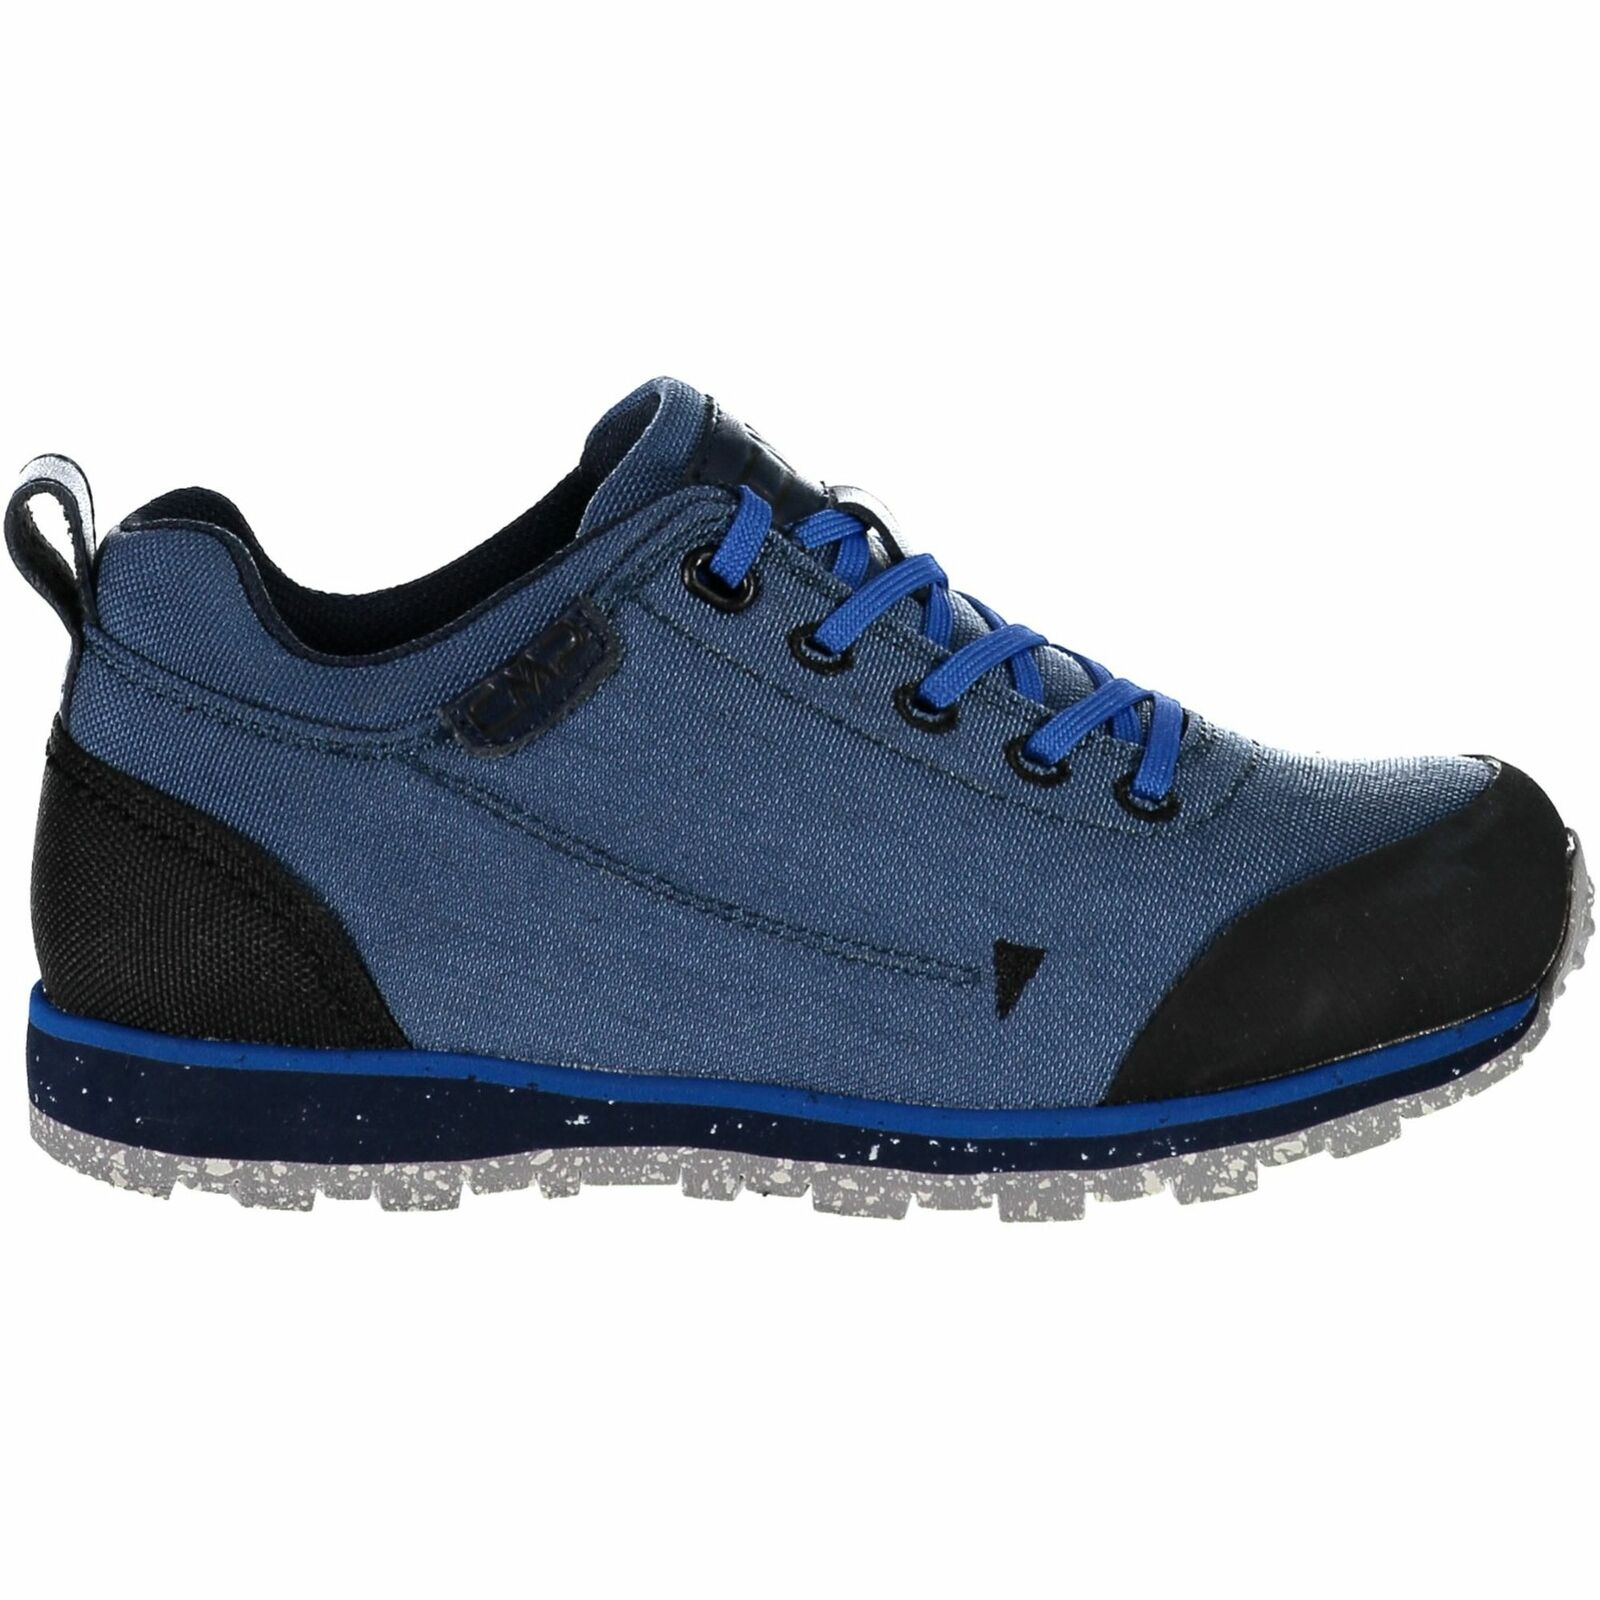 CMP walking boots shoes leisure kids  Elettra low cordura hiking  customers first